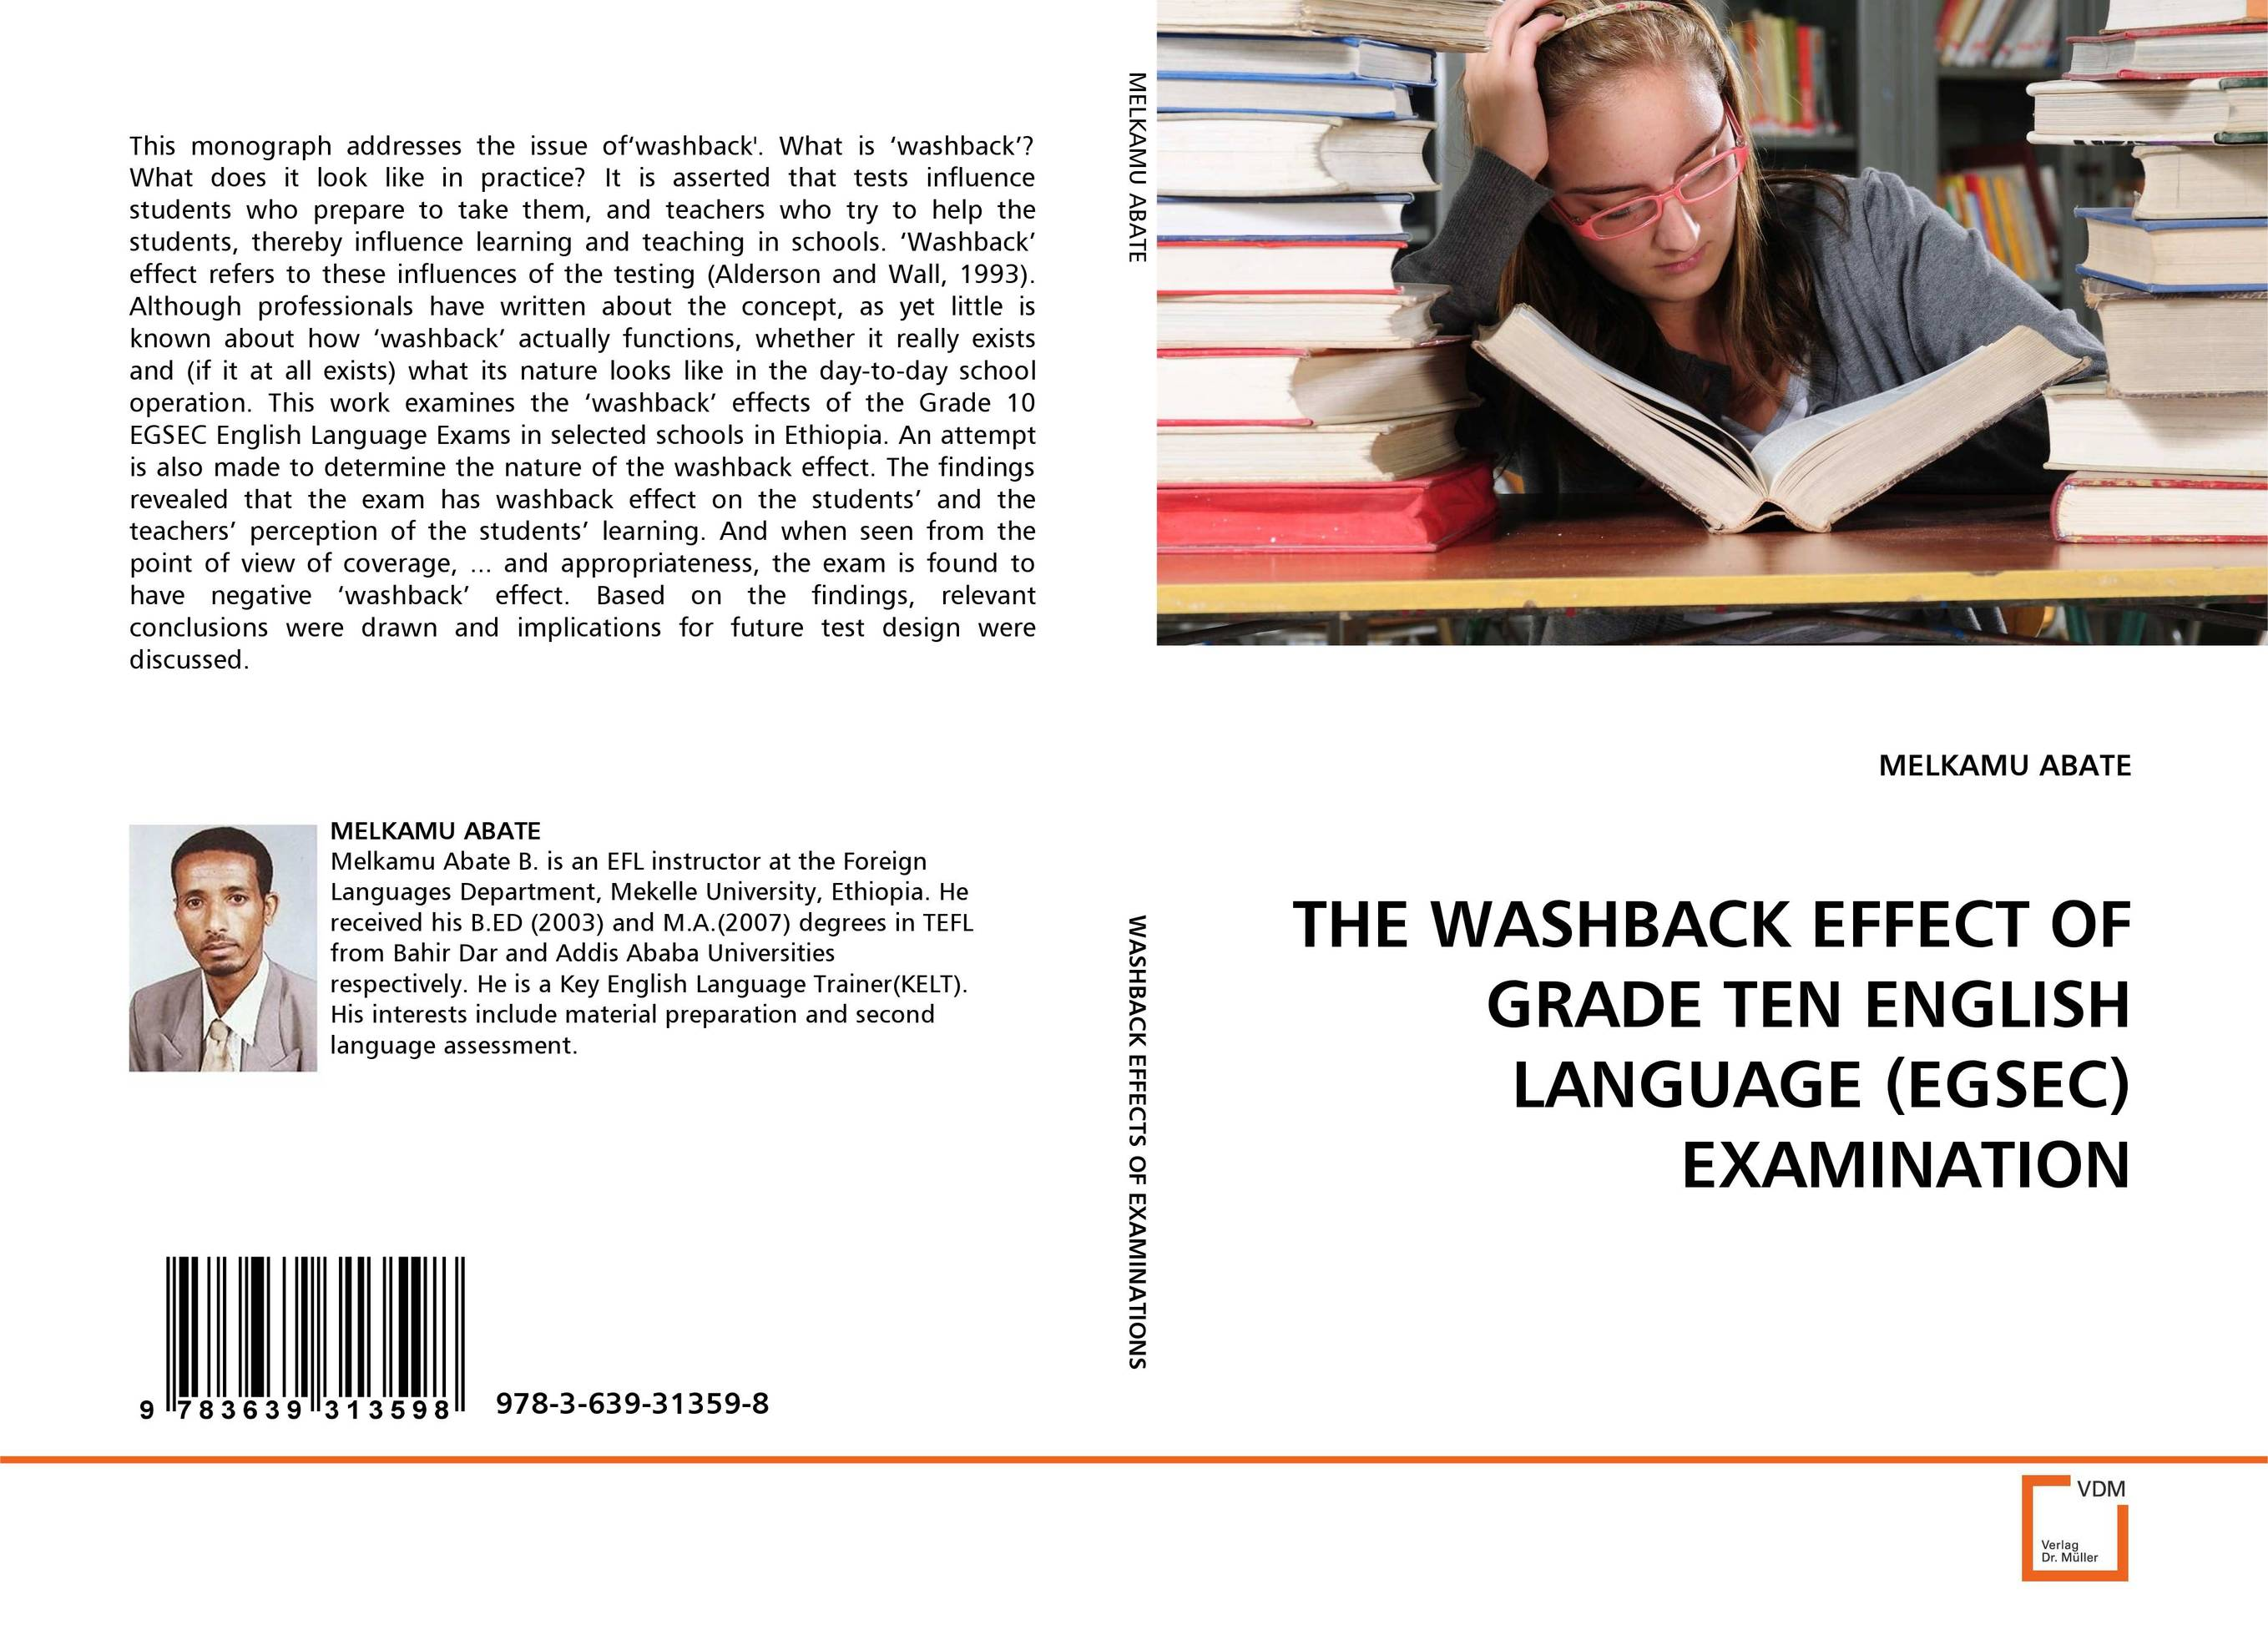 THE WASHBACK EFFECT OF GRADE TEN ENGLISH LANGUAGE (EGSEC) EXAMINATION helina befekadu the nature and effect of emotional violence